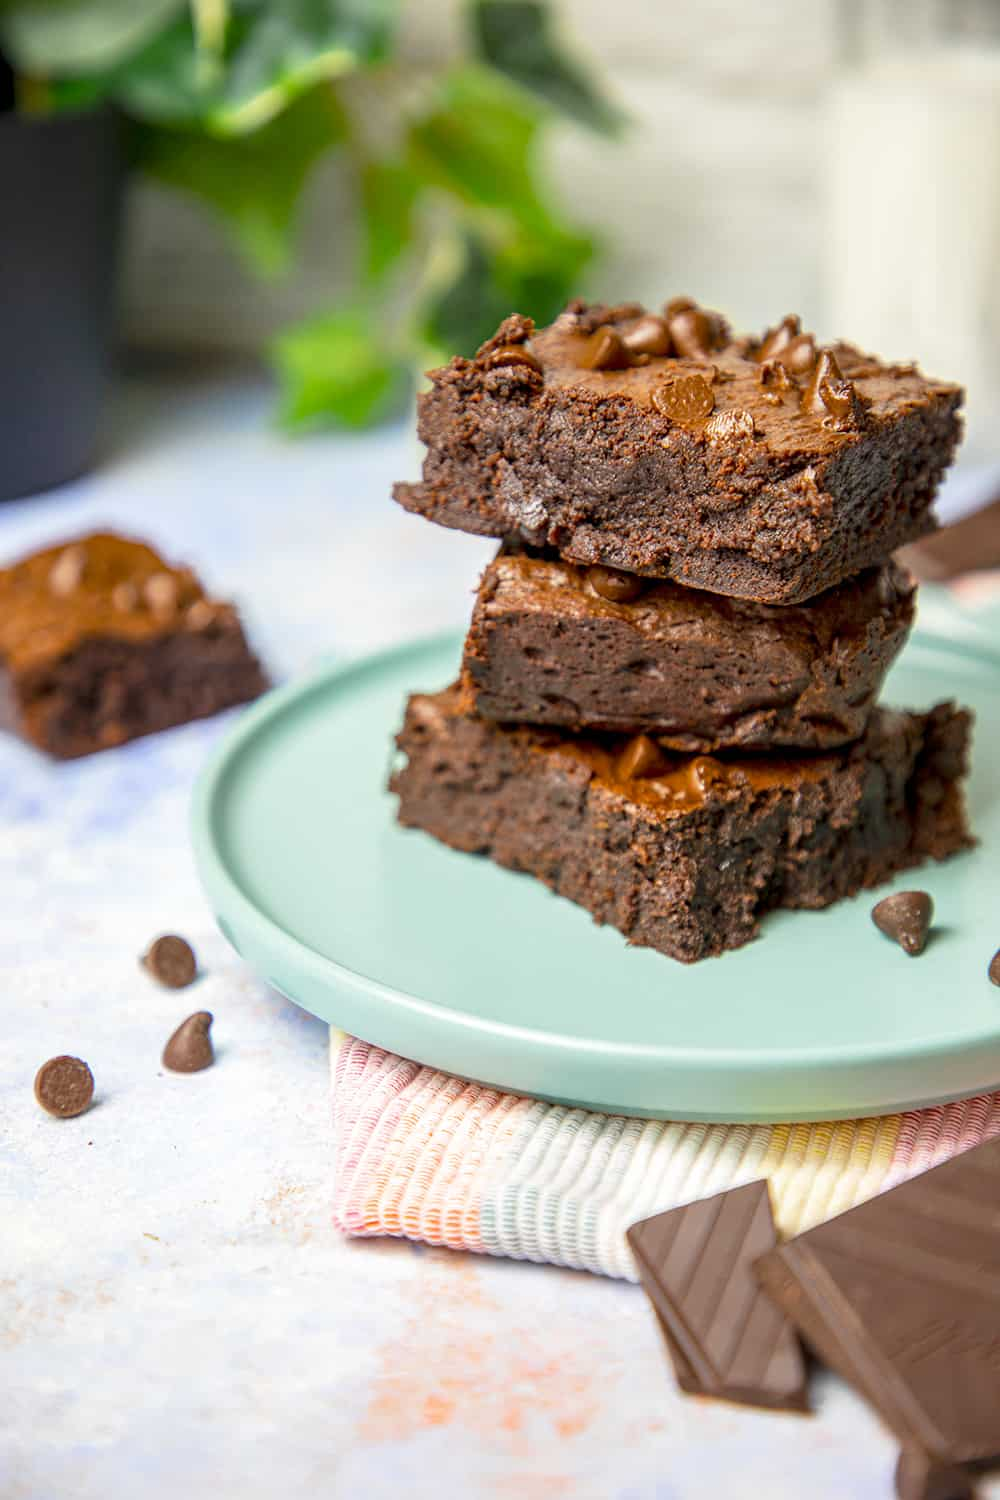 gluten free fudge brownies photo. The brownies are stacked on top of each other.